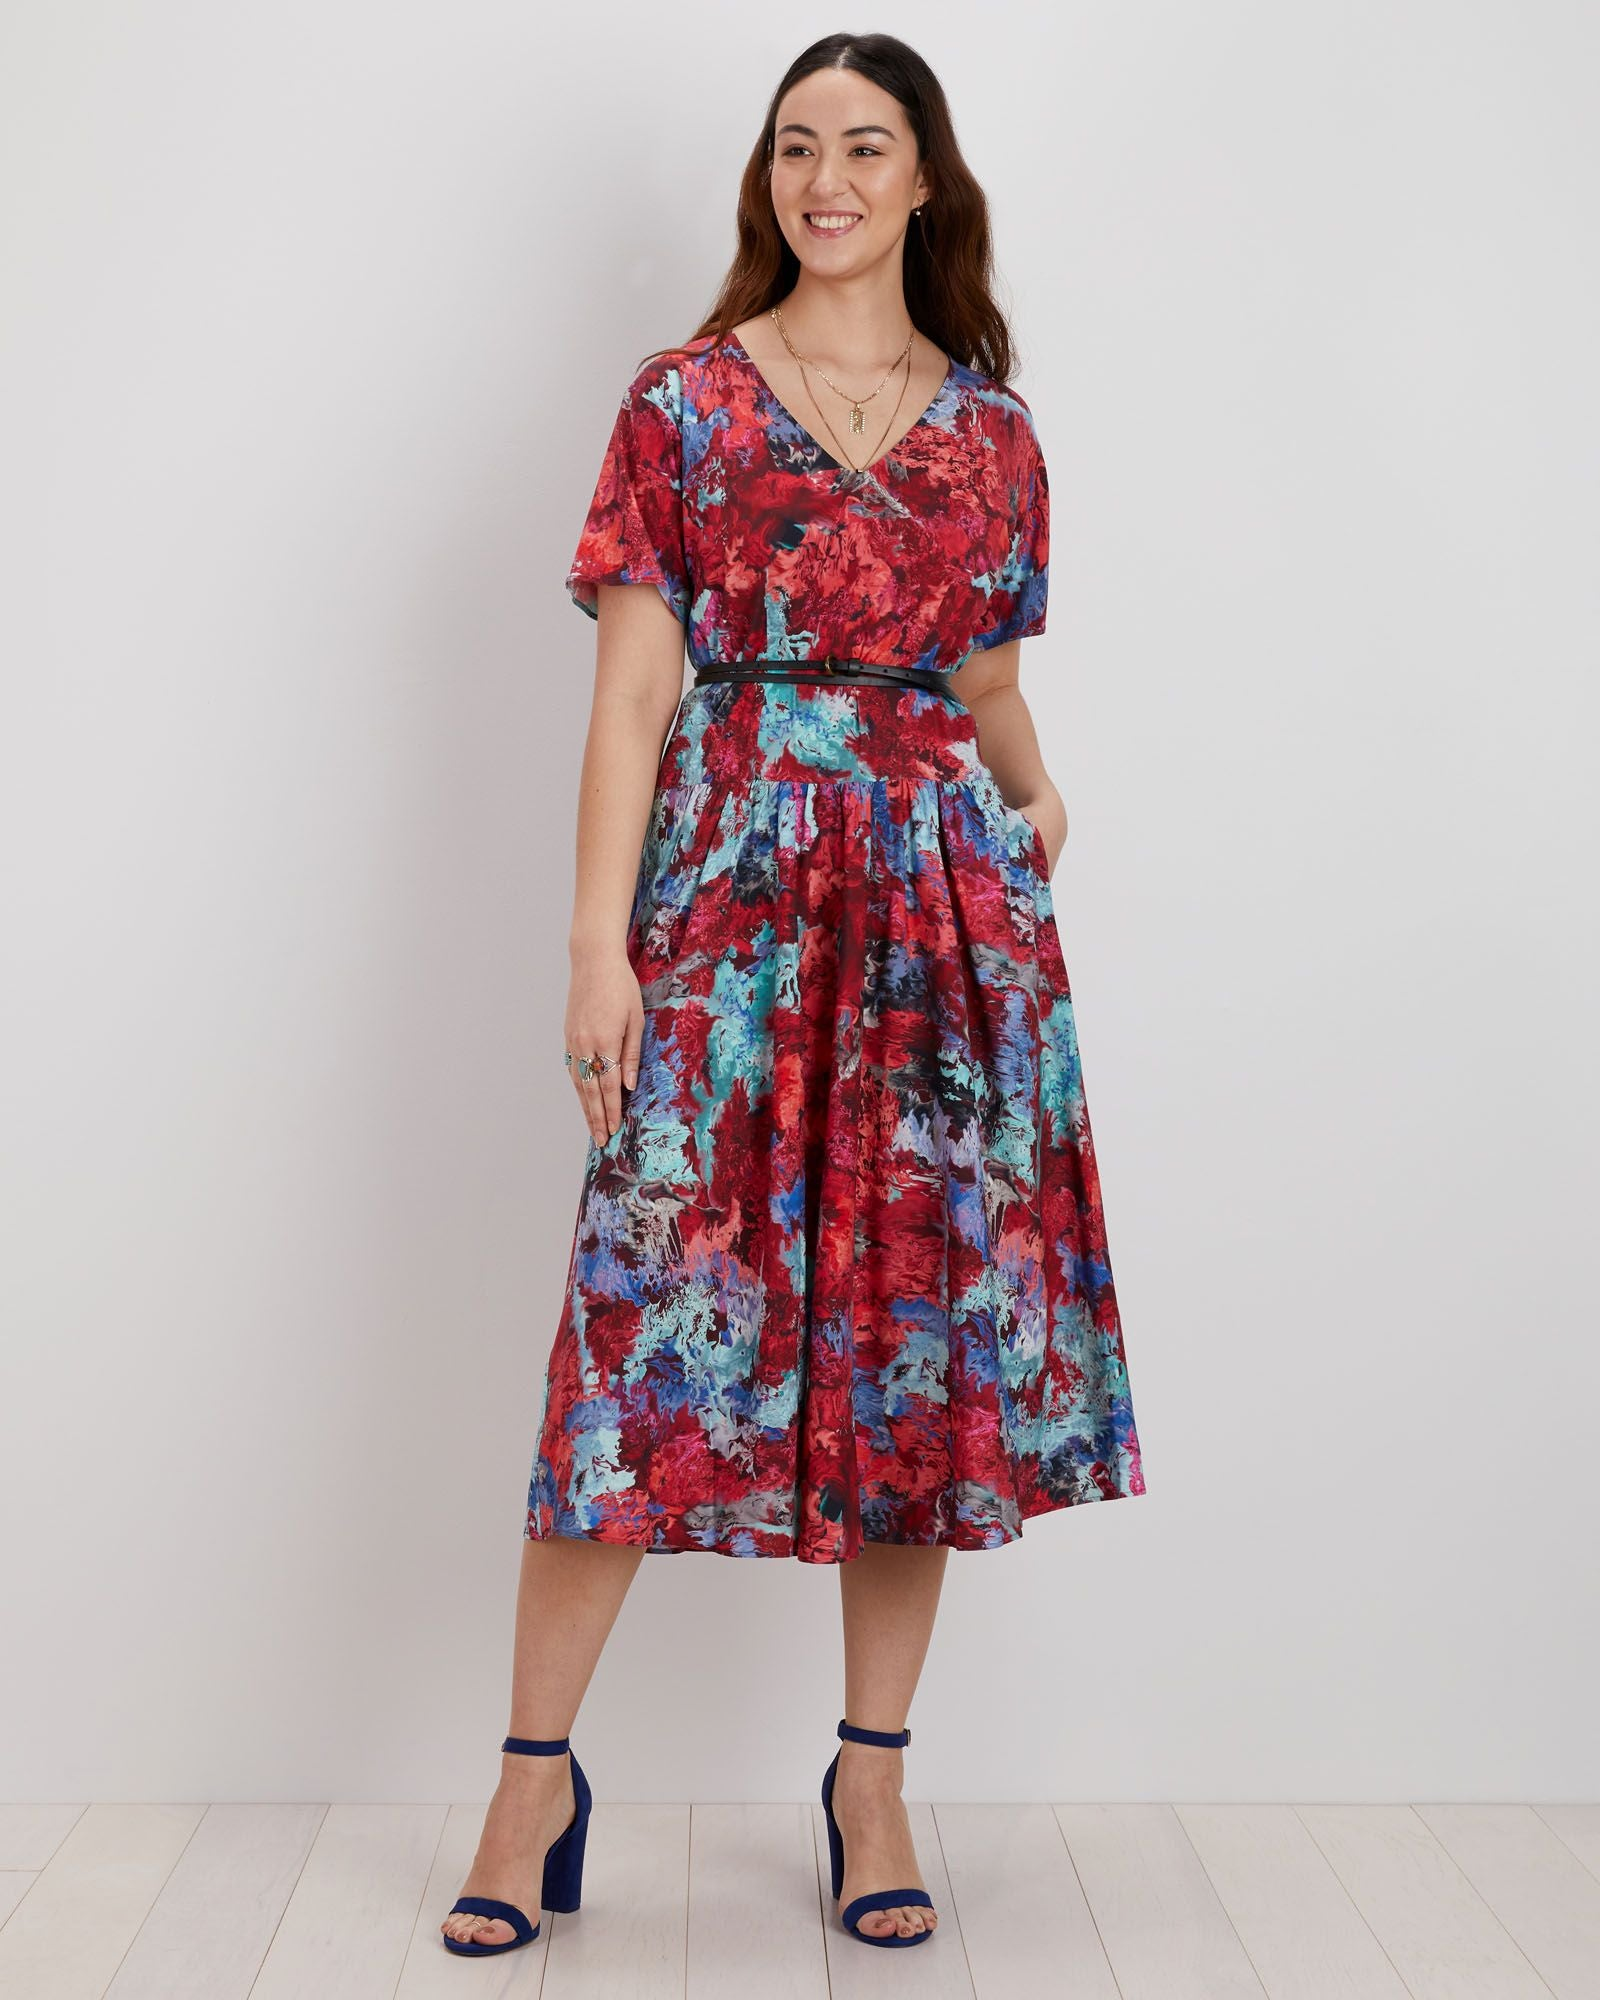 Sloane Dress | Cerise Blur